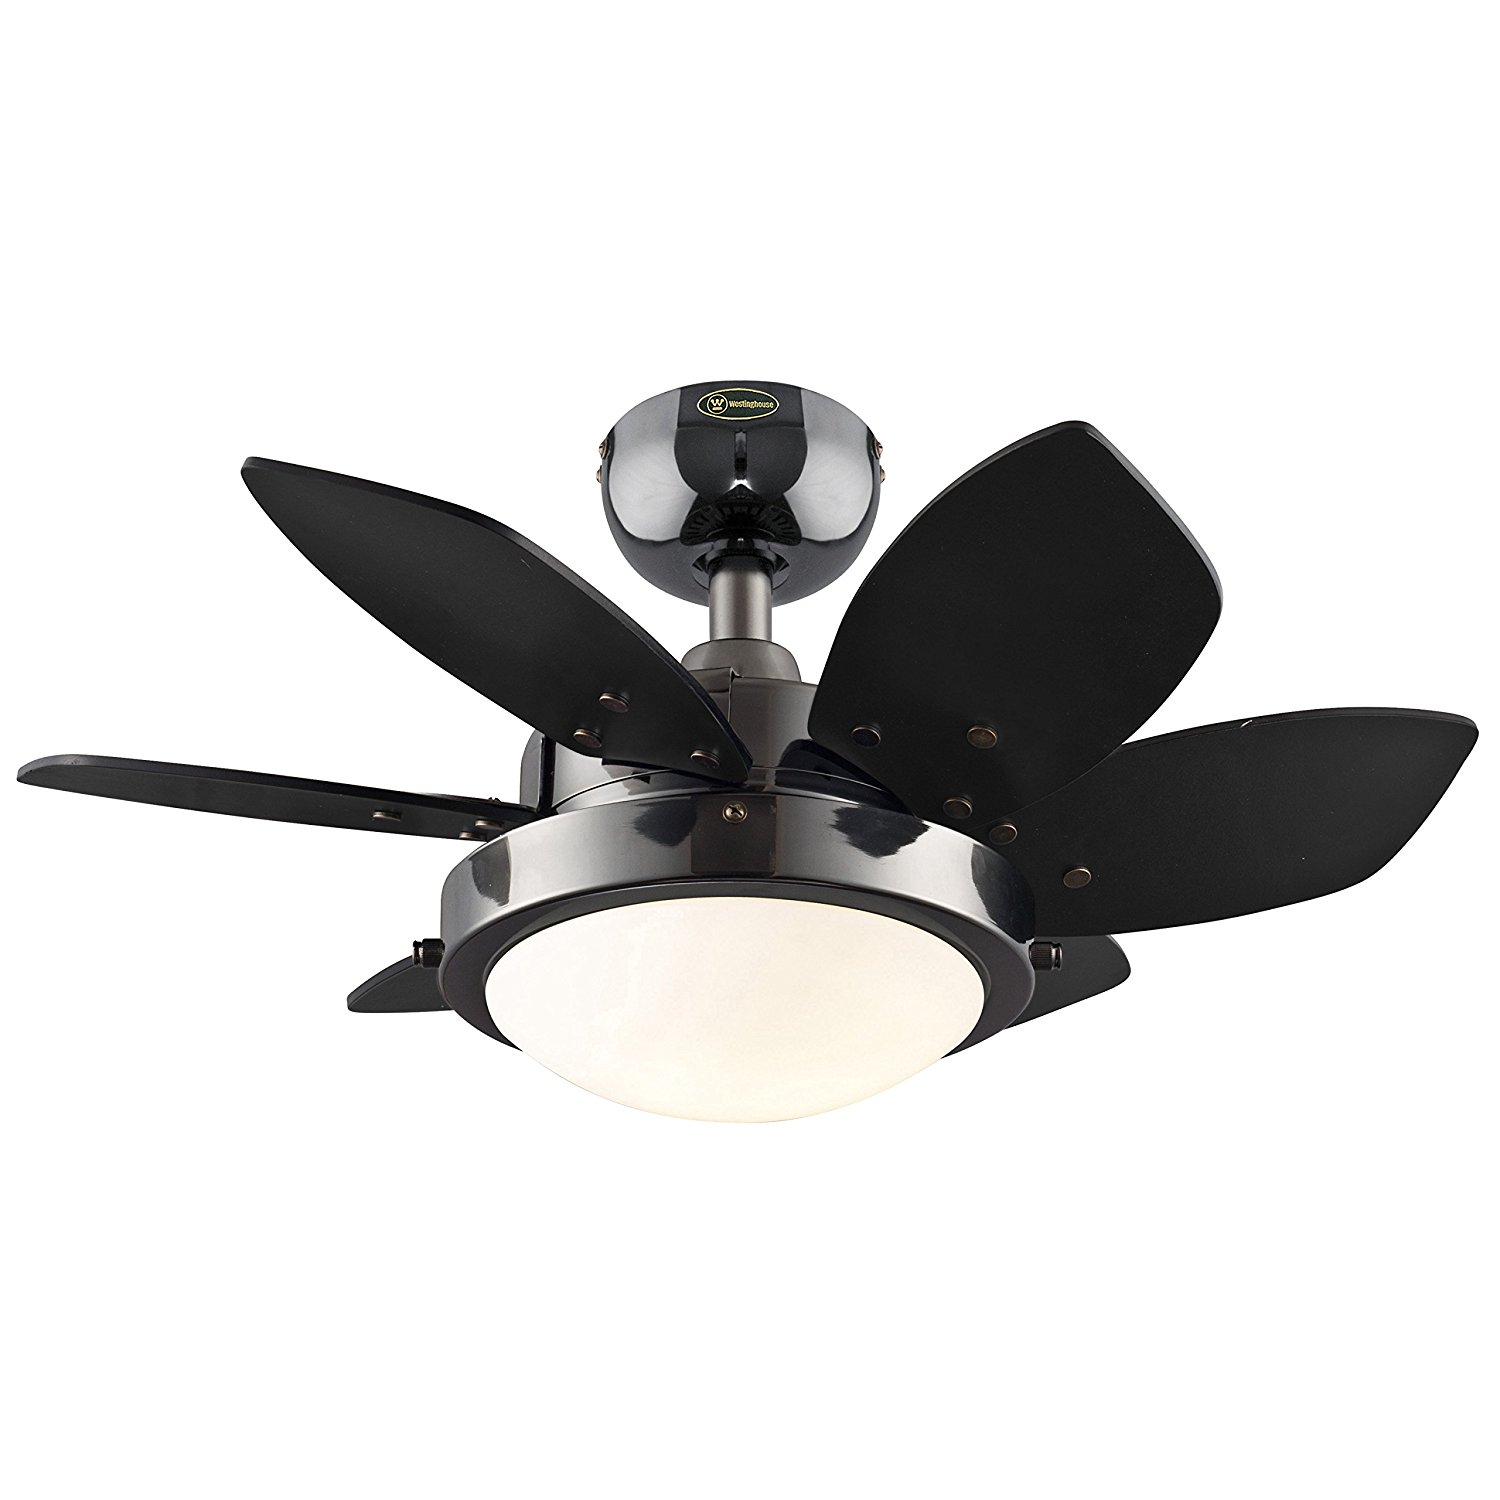 7224300 Quince 24-Inch Gun Metal Indoor Ceiling Fan, Light Kit with Opal Frosted Glass